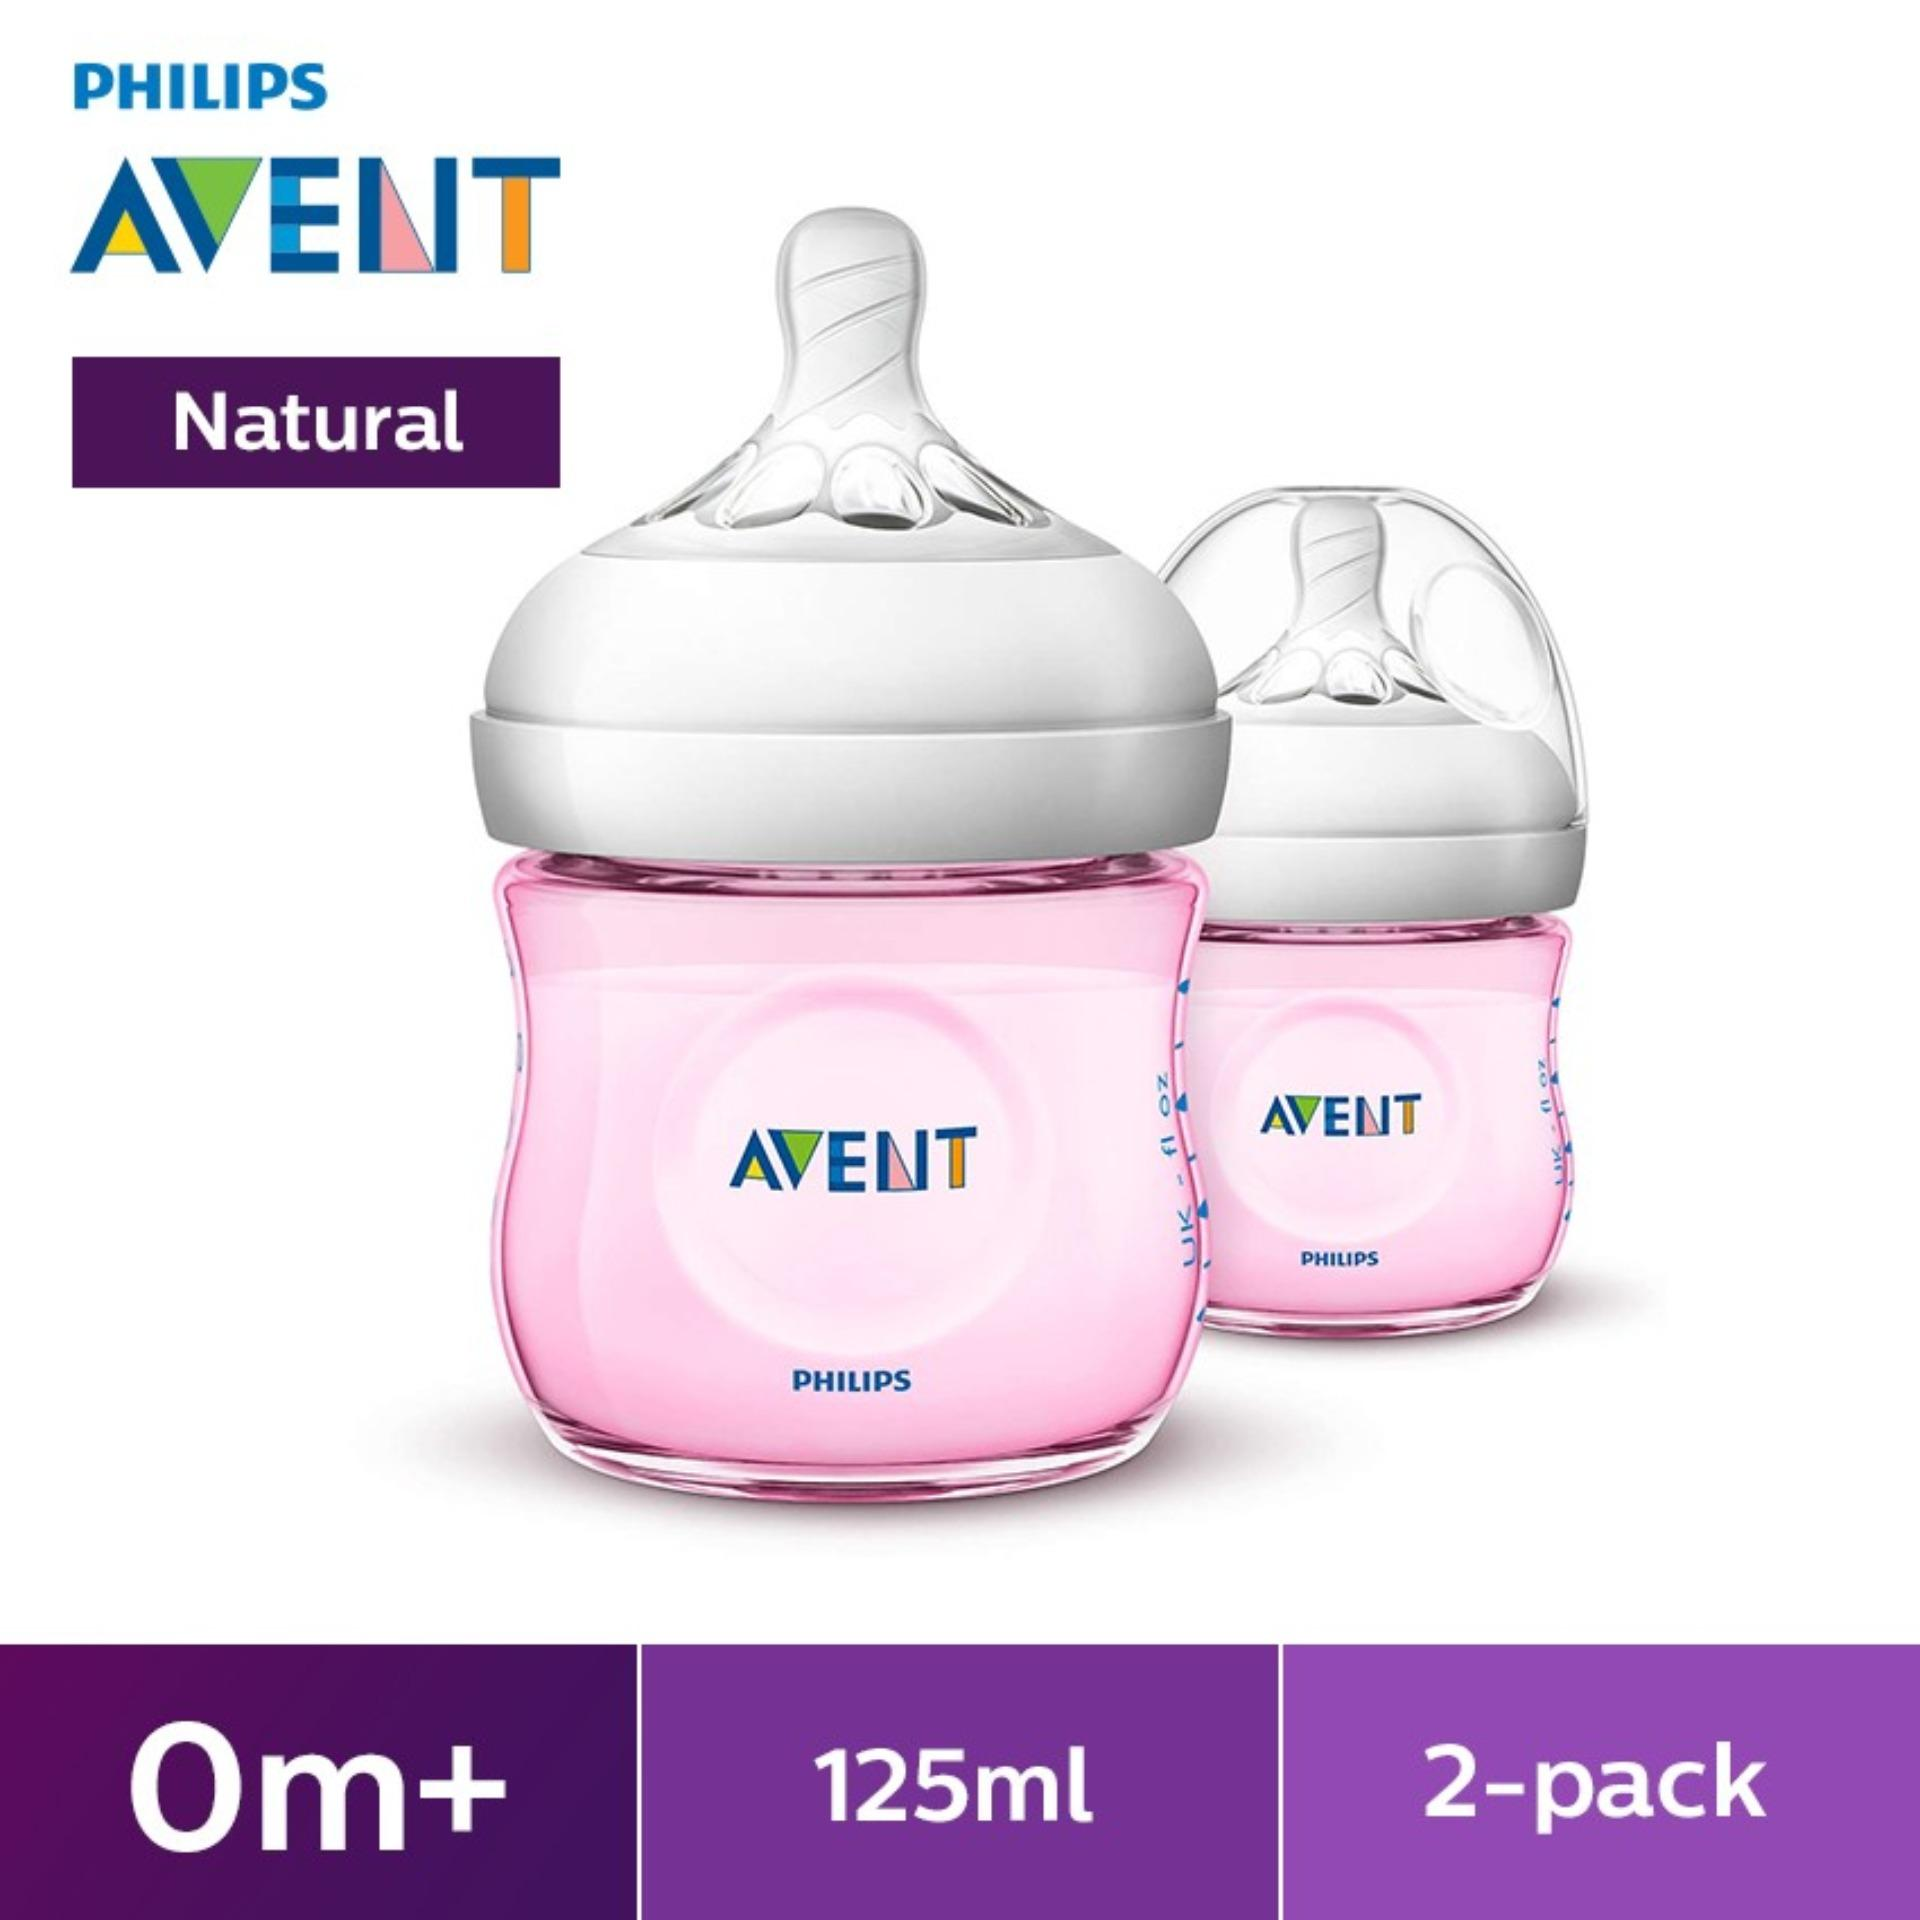 Philips Avent Natural 4oz Bottle Twin Pack - Pink By Lazada Retail Philips Avent.